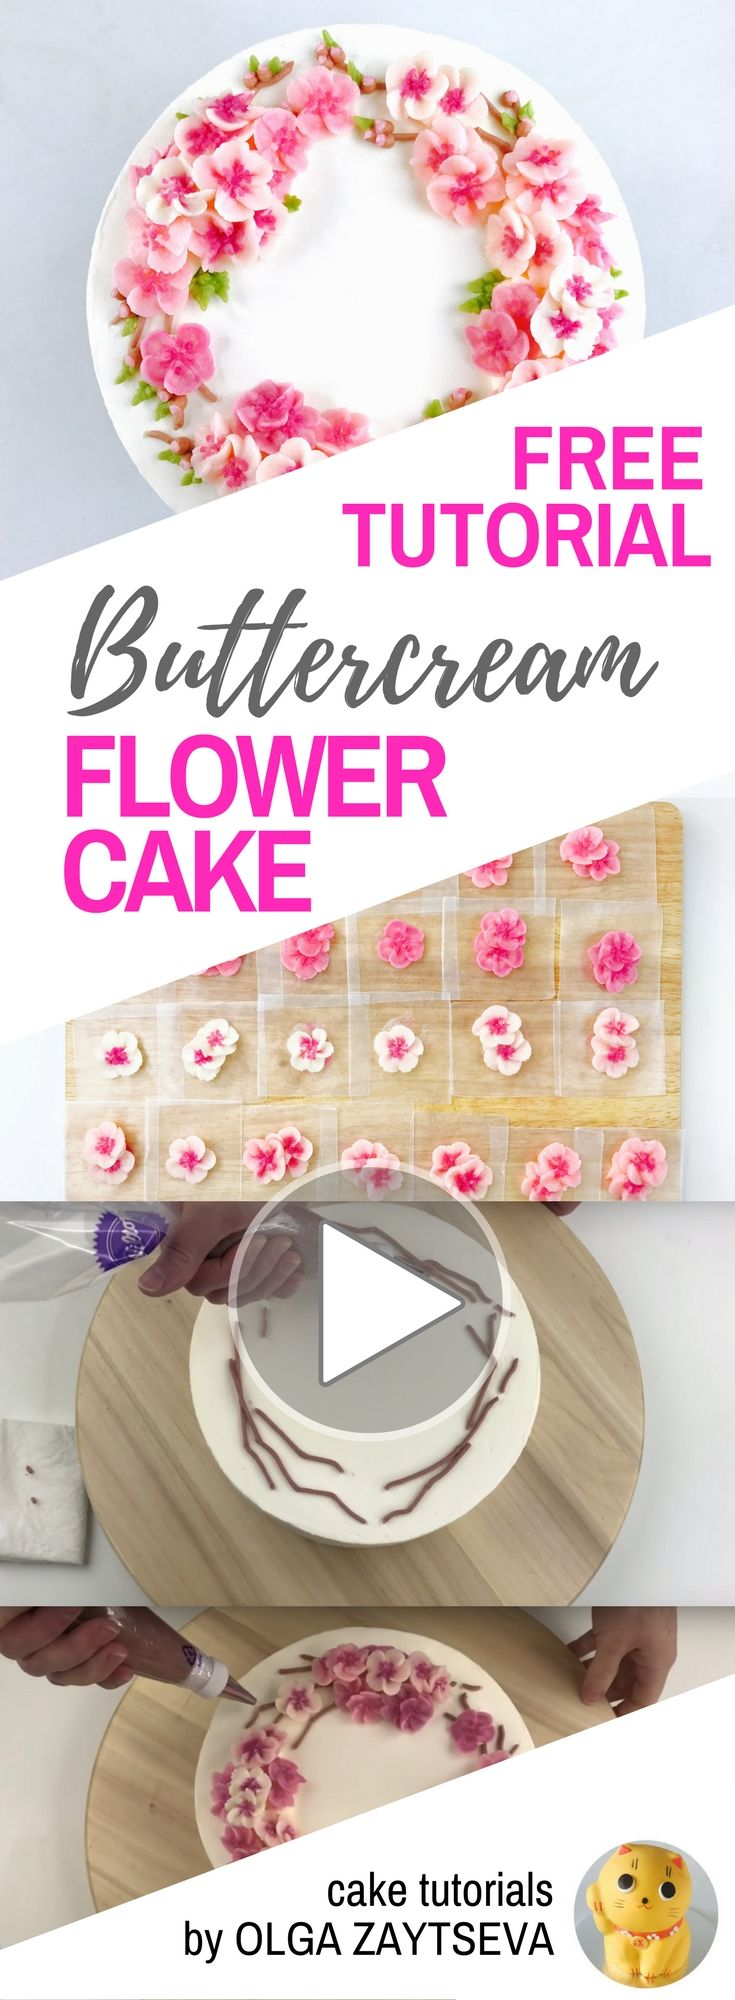 HOT CAKE TRENDS How to make Cherry Blossom buttercream flower wreath cake - Cake decorating tutorial by Olga Zaytseva. Learn how to pipe variety of tiny Cherry Blossoms and create this spring inspired buttercream flower wreath cake.